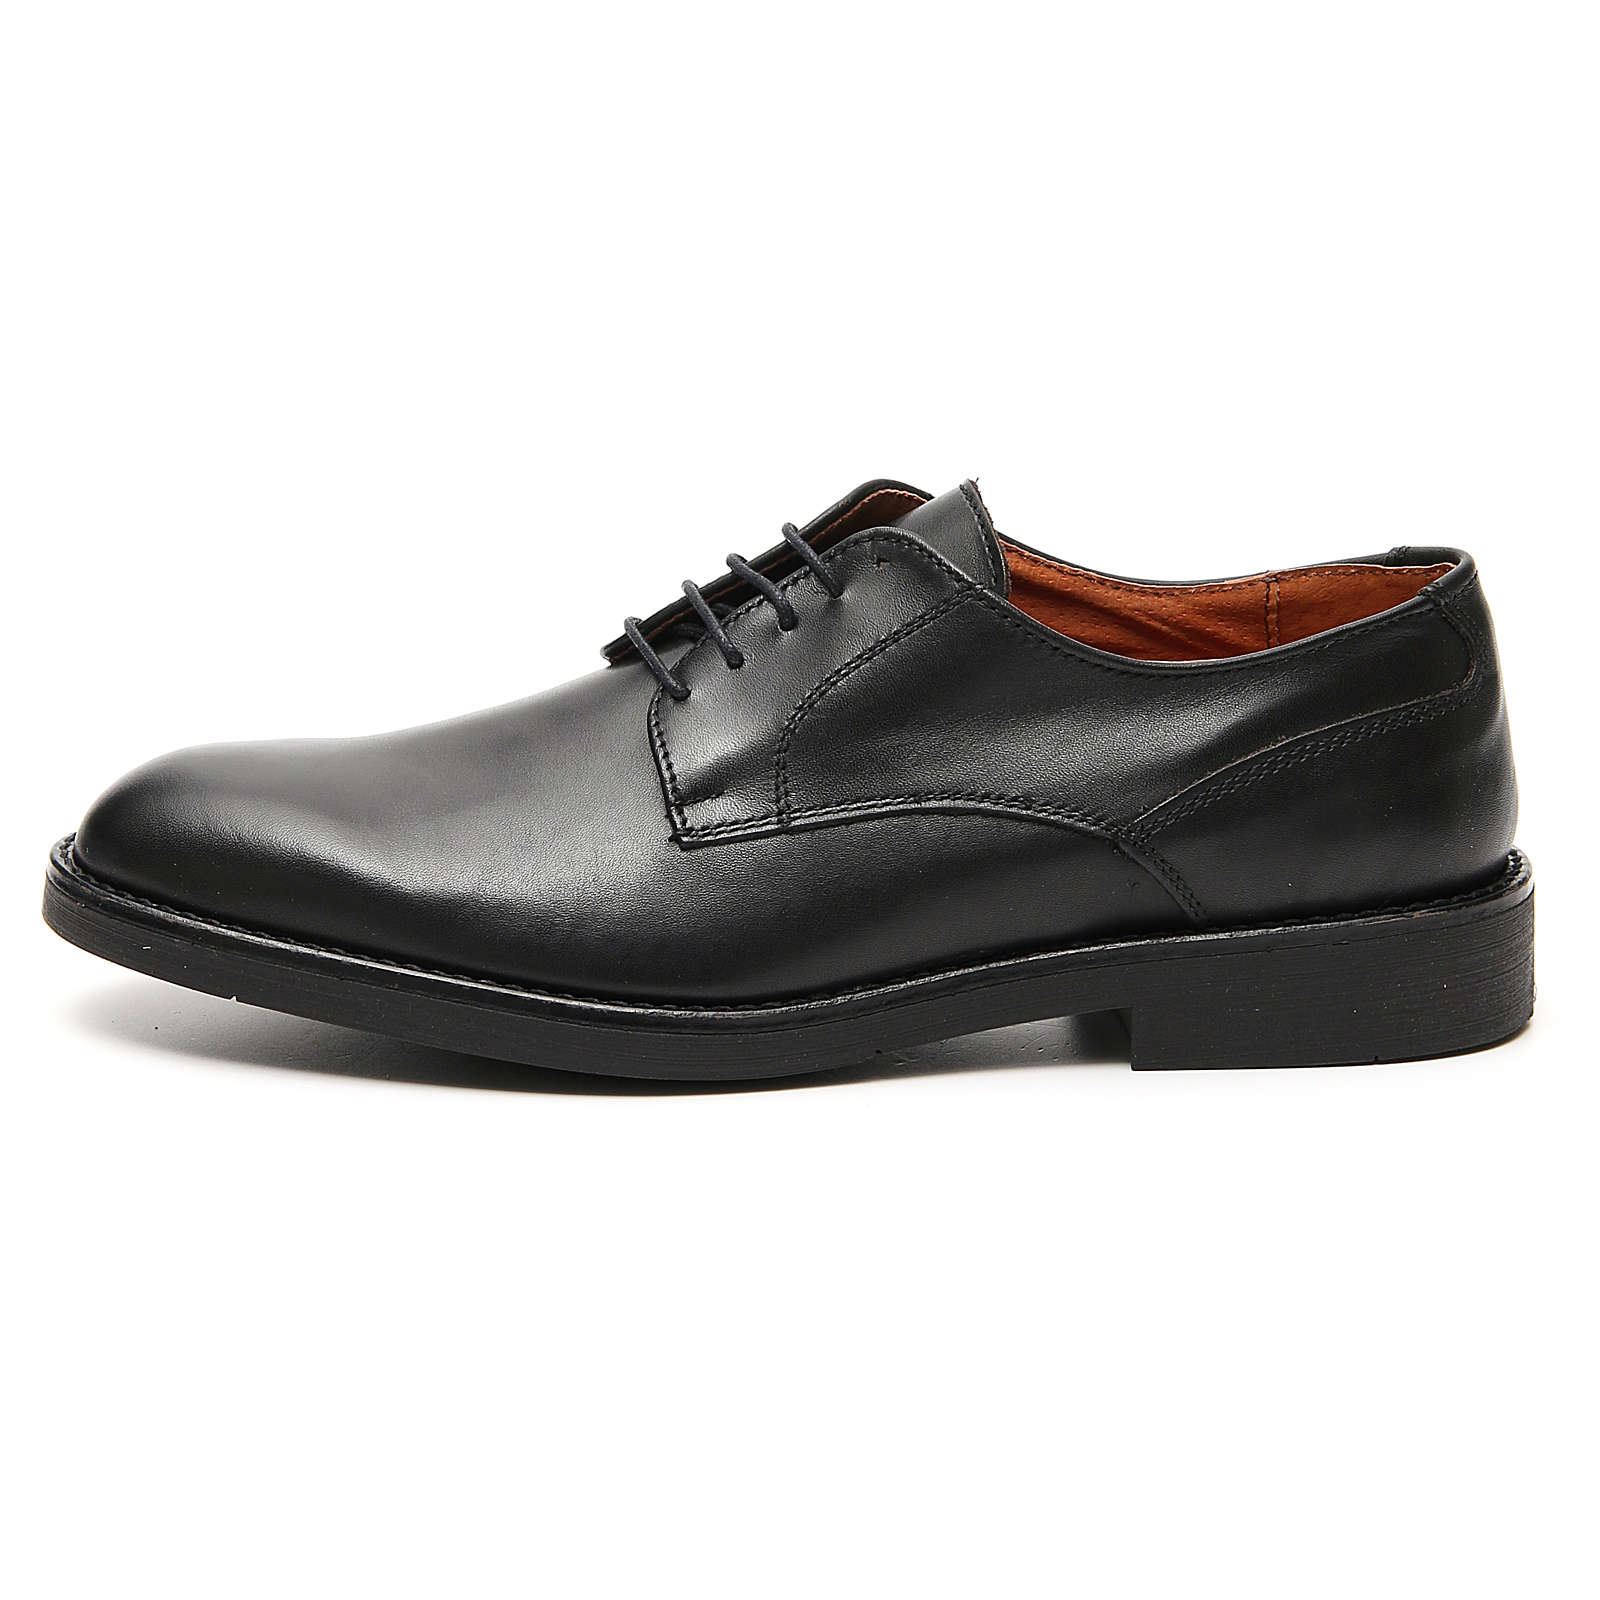 Shoes in opaque real black leather 4